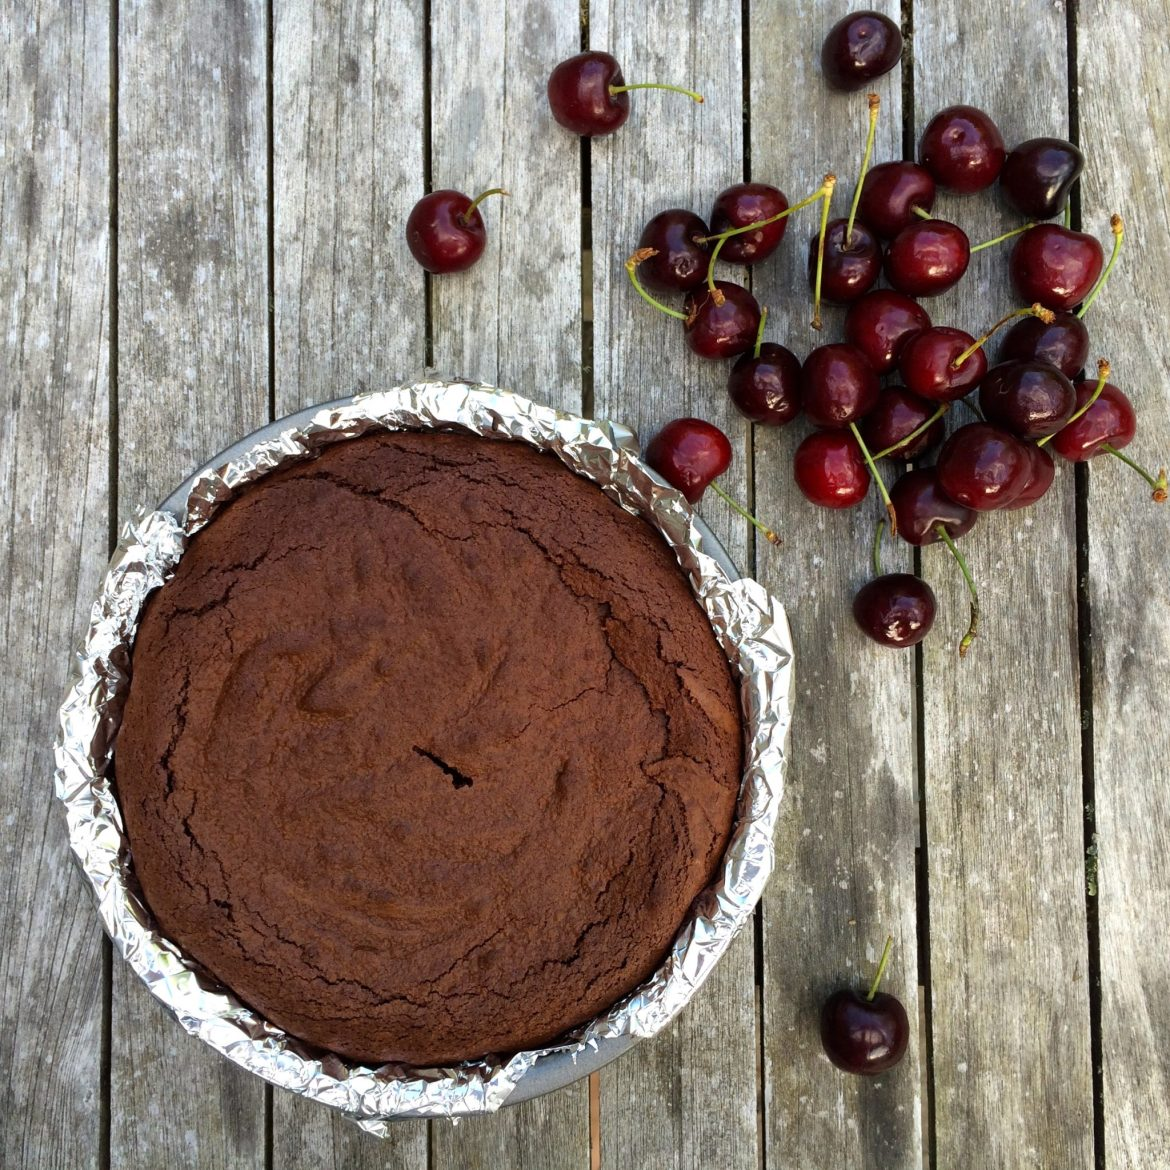 A tray of cooked brownie with fresh cherries